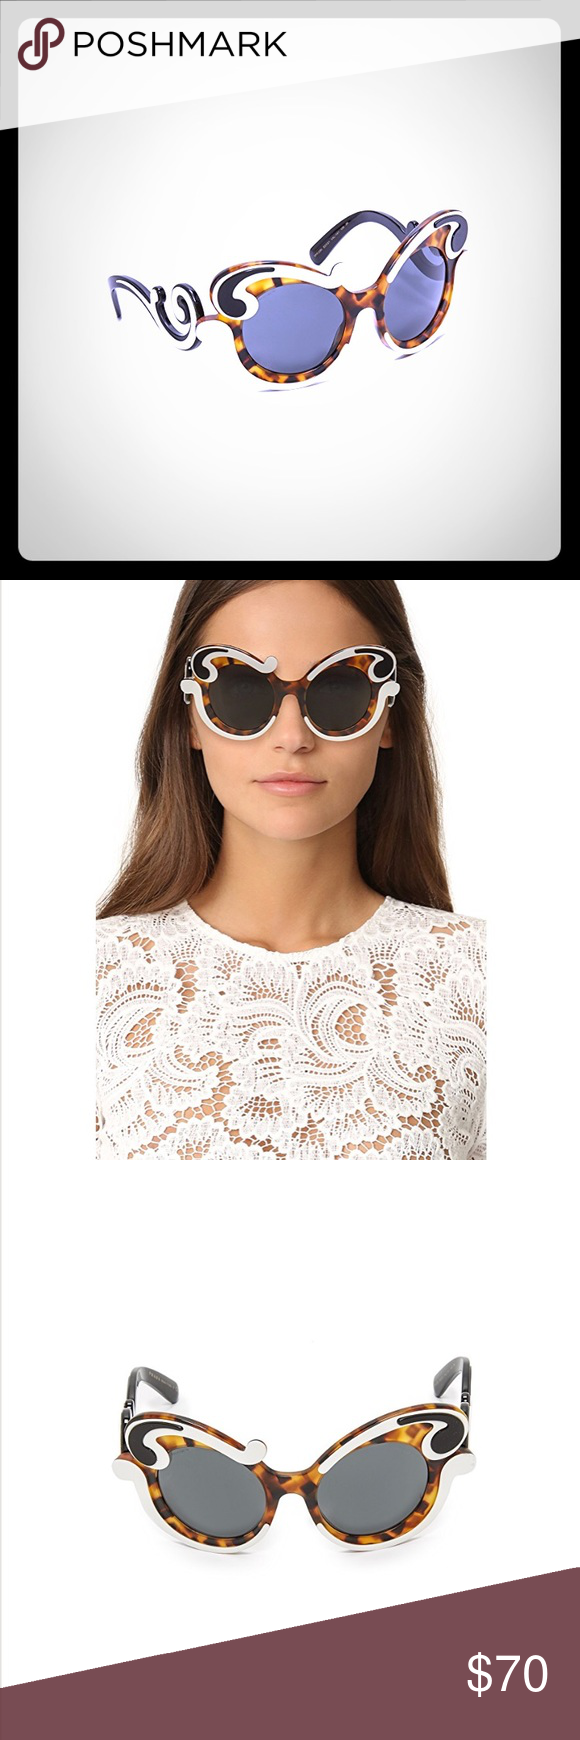 93ec25786078b Prada Special Fit Swirl Sunglasses SPR23N 52021 100% Authentic These  sunglasses are a part of